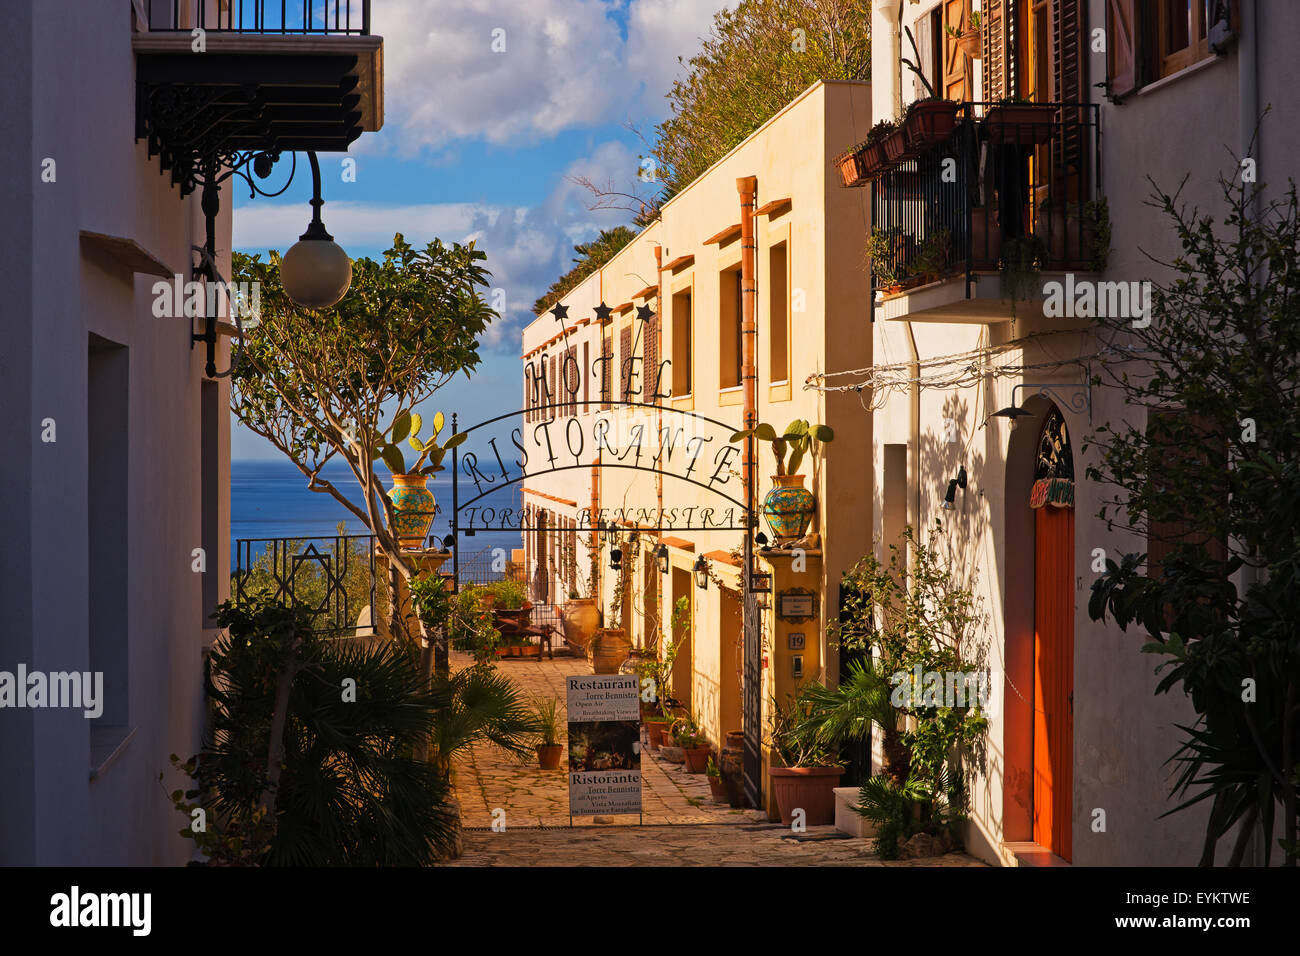 Hotel layout in Scopello, Sicilia, Italia, Immagini Stock